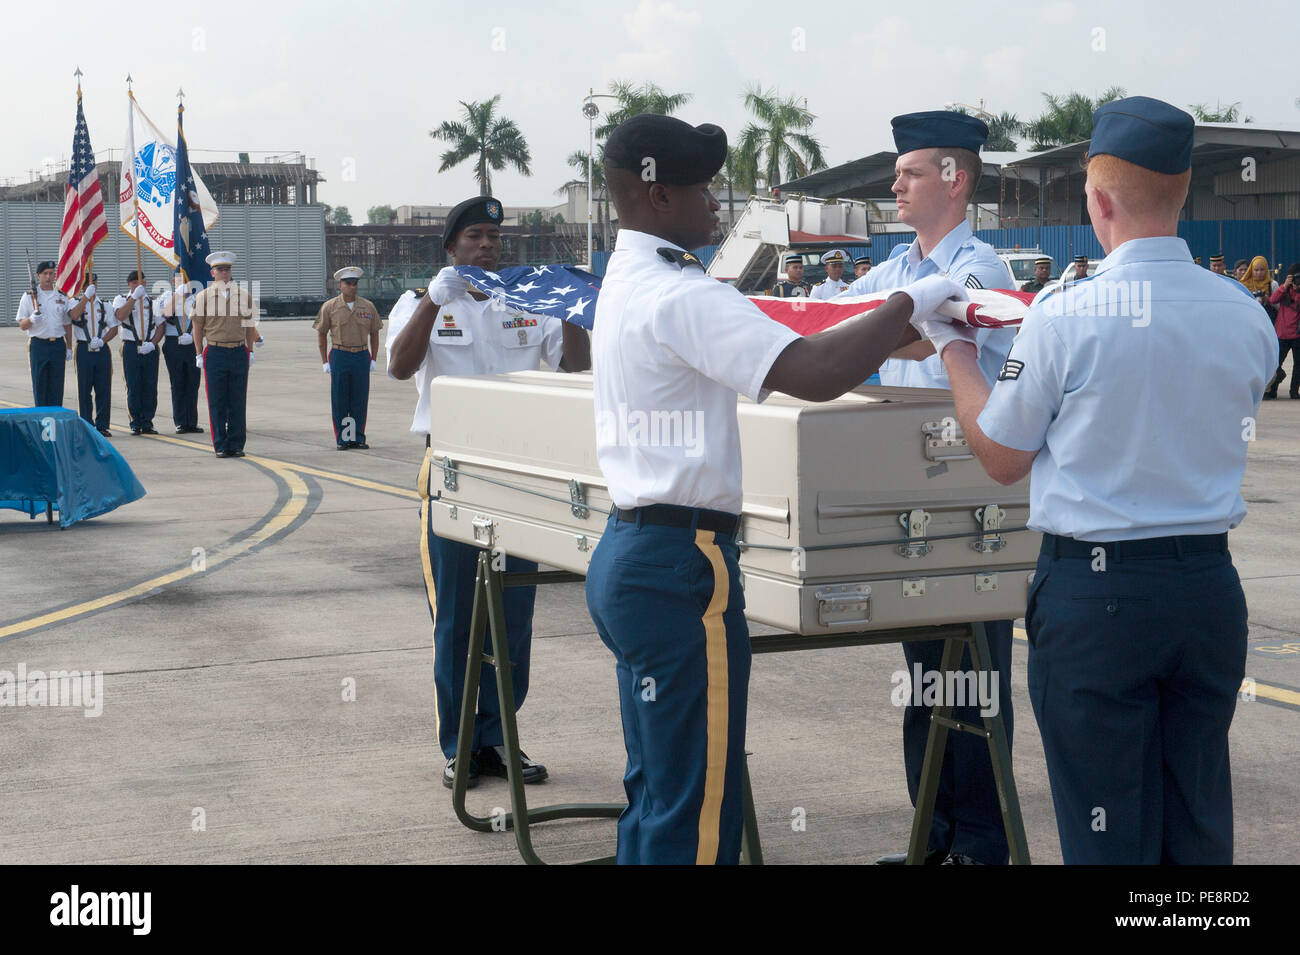 A joint service team prepares to drape an American flag over a casket during a repatriation ceremony at Subang Air Base, Malaysia, Nov. 5, 2015. The 15-member team comprised of members of the Defense POW/MIA Accounting Agency as well service members from U.S. Army Pacific and Pacific Air Force Command, was sent from Hawaii to honor the remains of a fallen service member who paid the ultimate sacrifice when his plane went down over Malaysia in 1945. The ceremony signifies the transfer of the remains from Malaysia back to the U.S. where the service member can be ultimately identified and returne - Stock Image